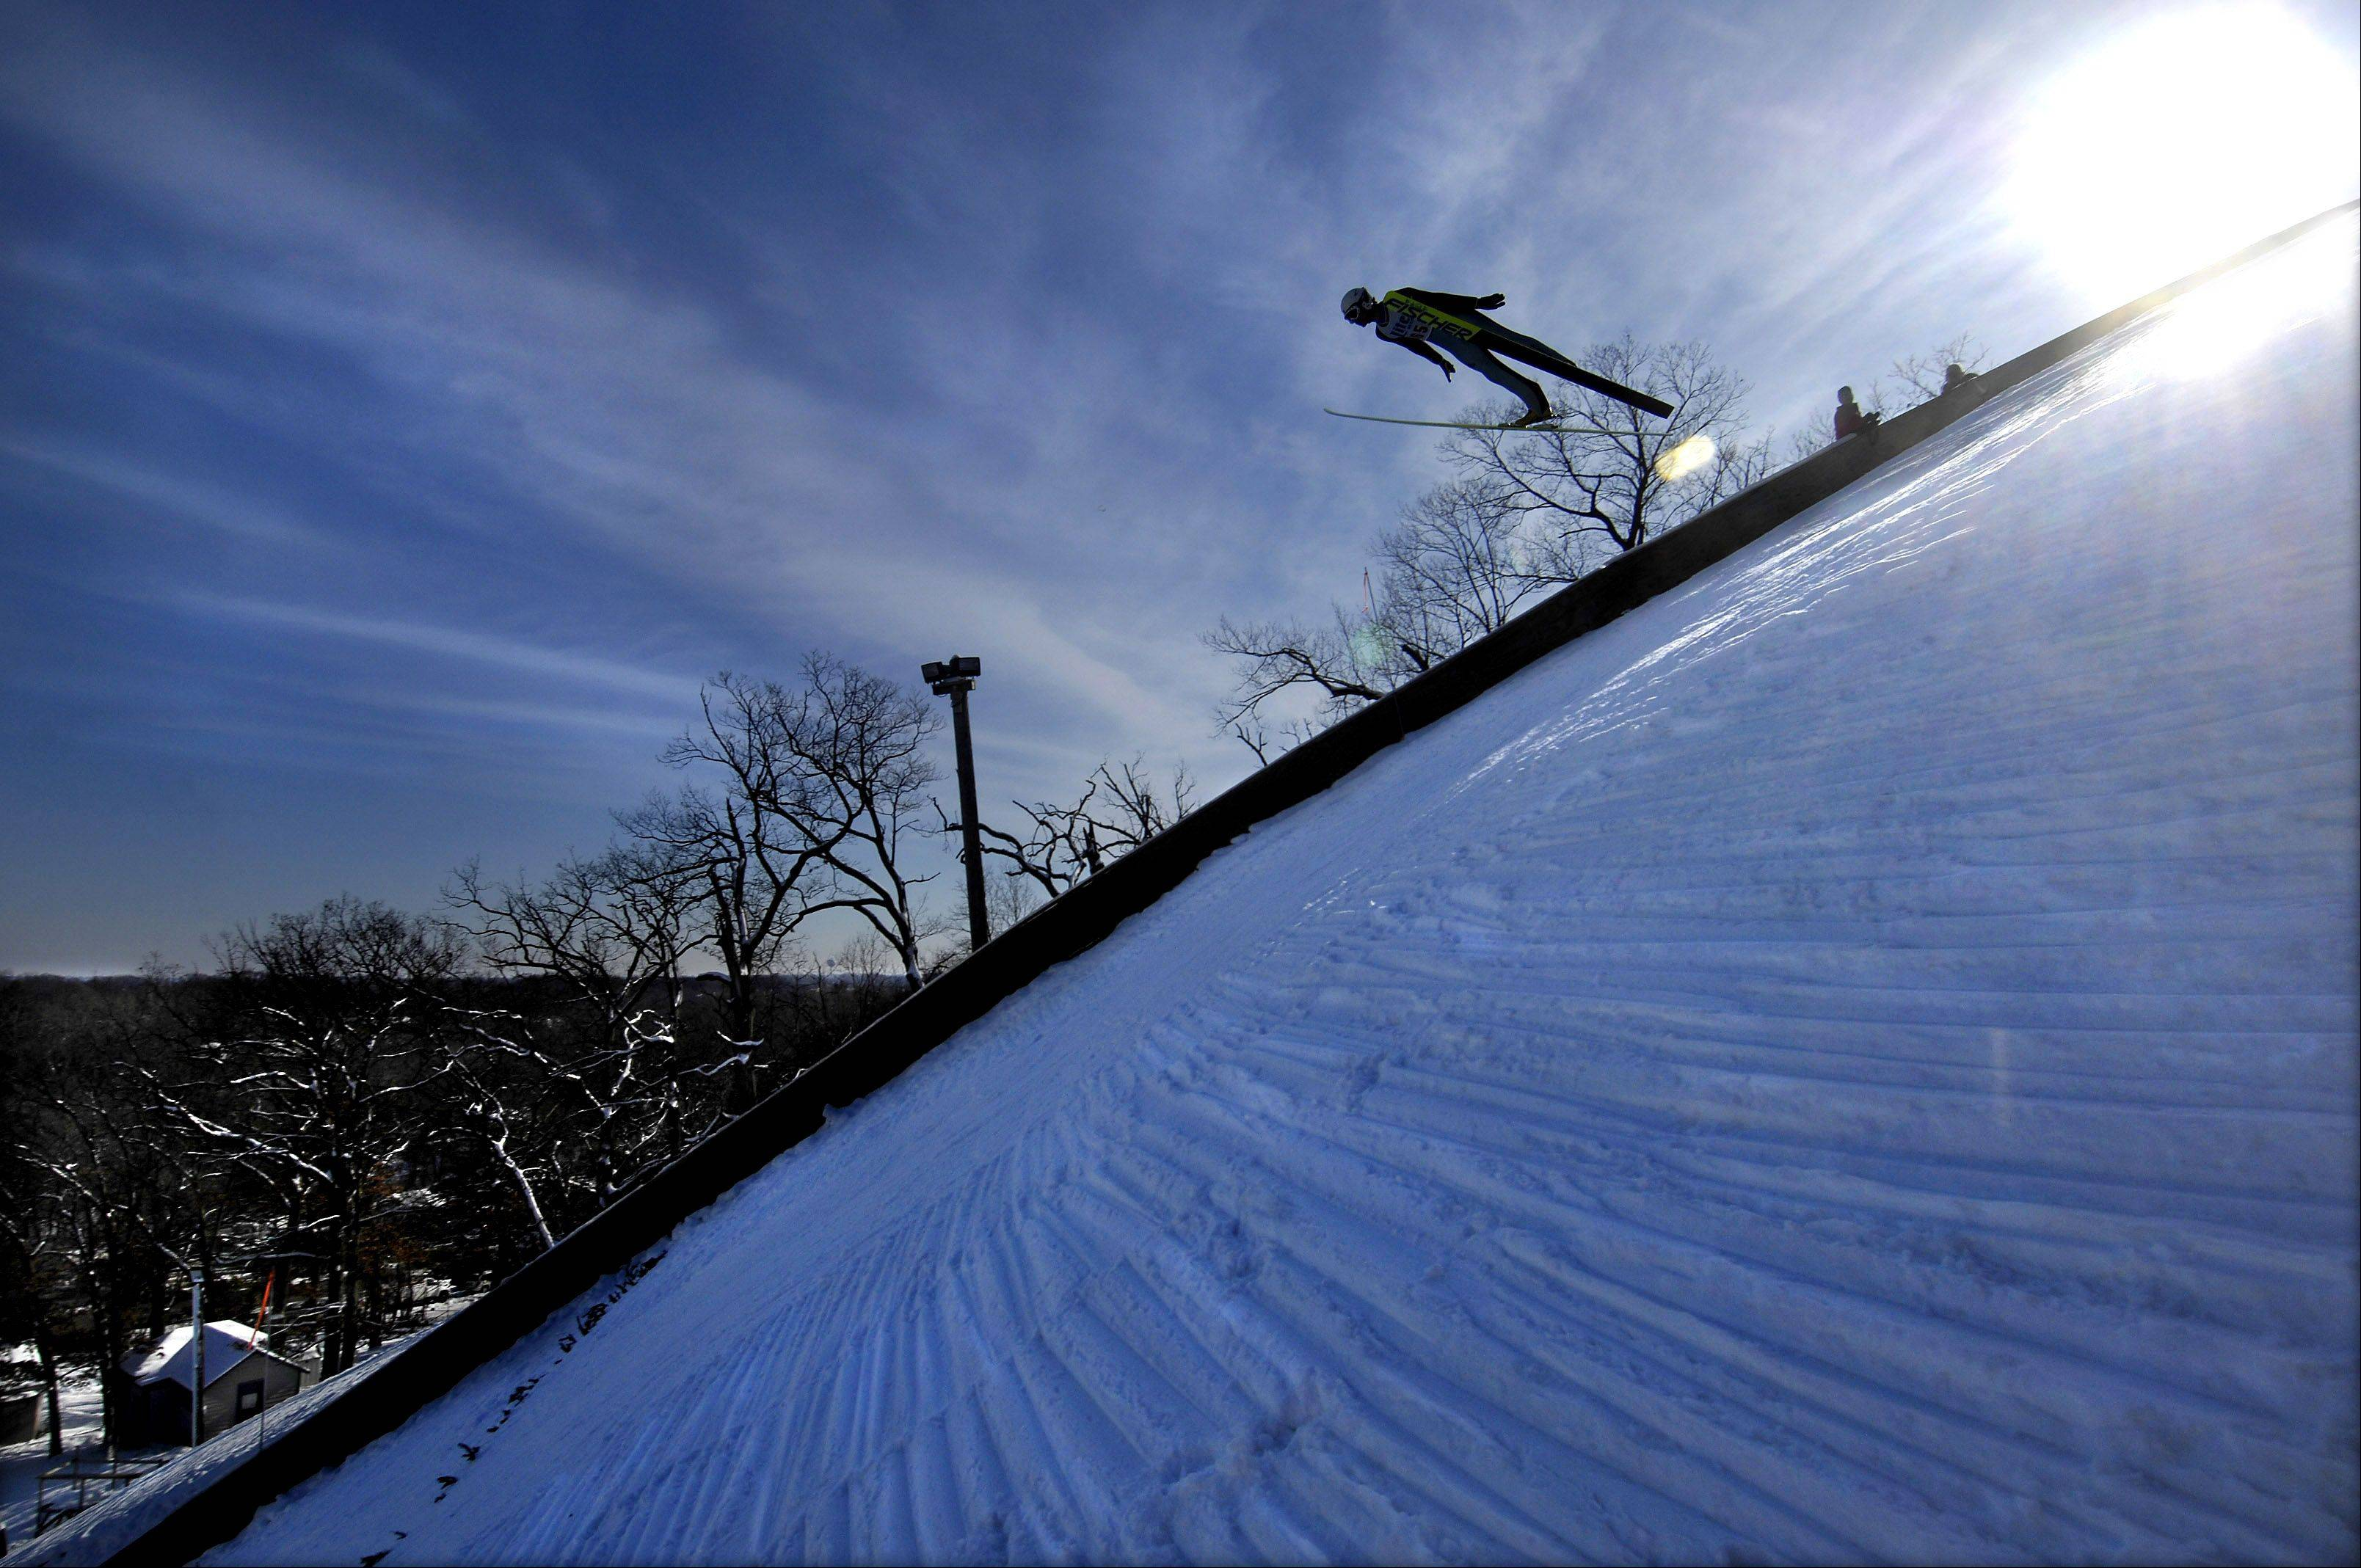 "The packed snow on the 70 meter ski jump hill reflects the blue winter sky as a skier sails down at a previous Norge Ski Jump Tournament in Fox River Grove. Dozens of former and potential Olympic ski jumpers compete at the event. The hills and jumps are all built and maintained by volunteers. More than 100 years ago, Norge Ski Club members carried snow up onto the tower by using long lines of volunteers, passing bags of snow from one person to the next, and spreading it on the tower and hill by hand. Today it is still done the same way. In the days before the weekend tournament, the ""snowing the tower"" chore is a social event for the club."